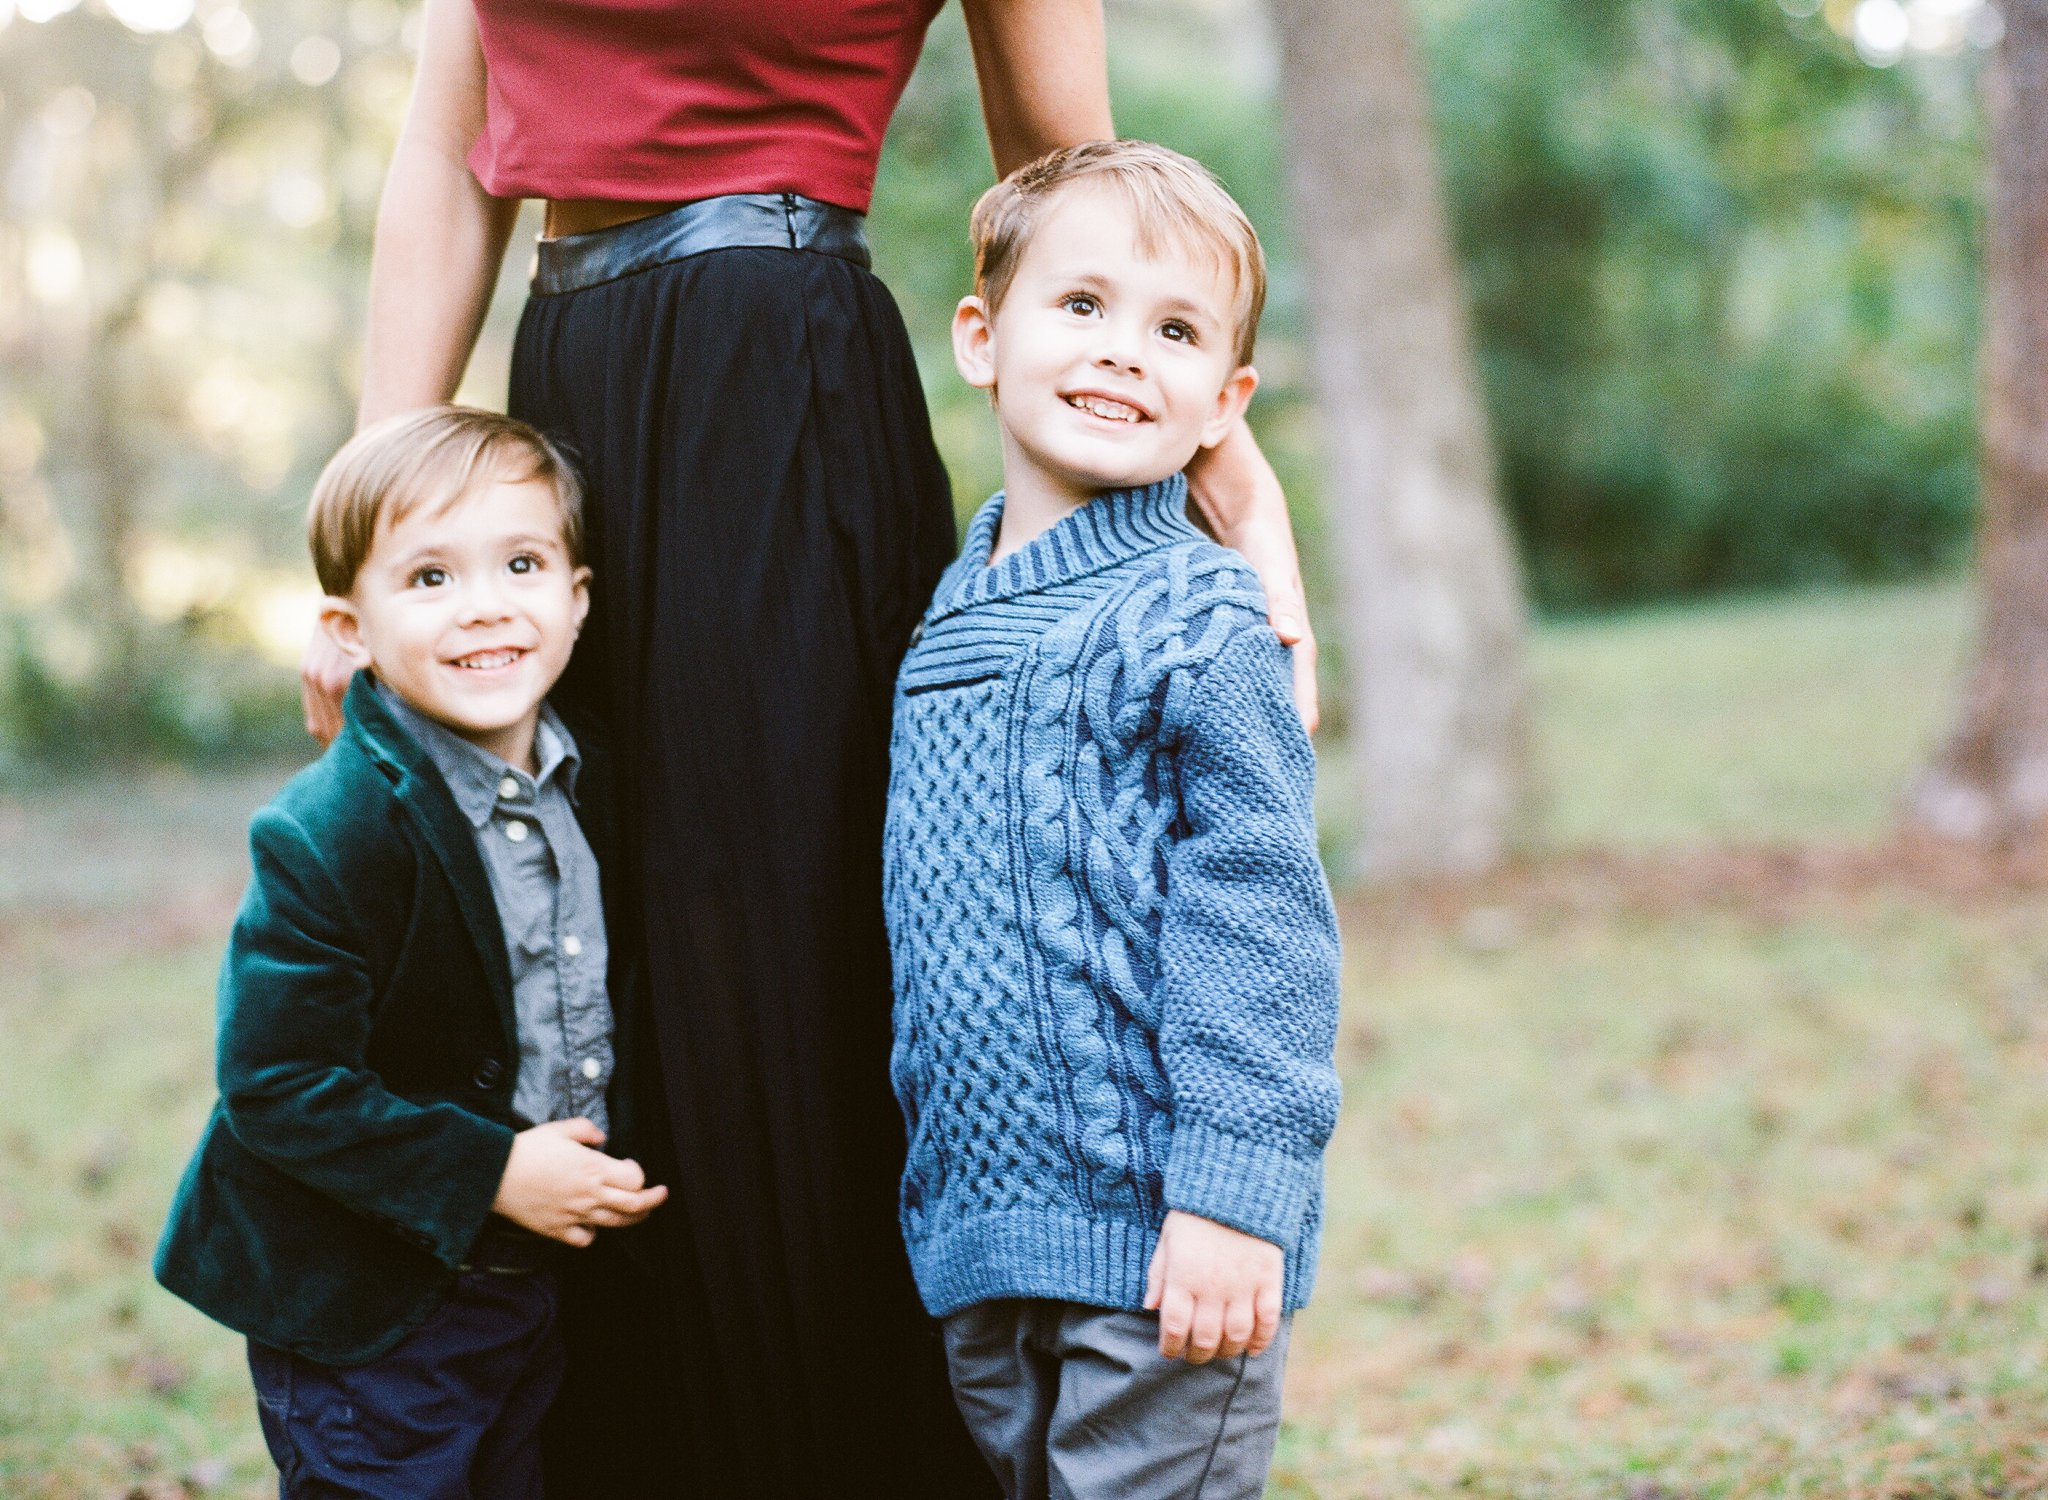 tips for the perfect holiday photos west palm beach family photographer shannon griffin photography_0010.jpg